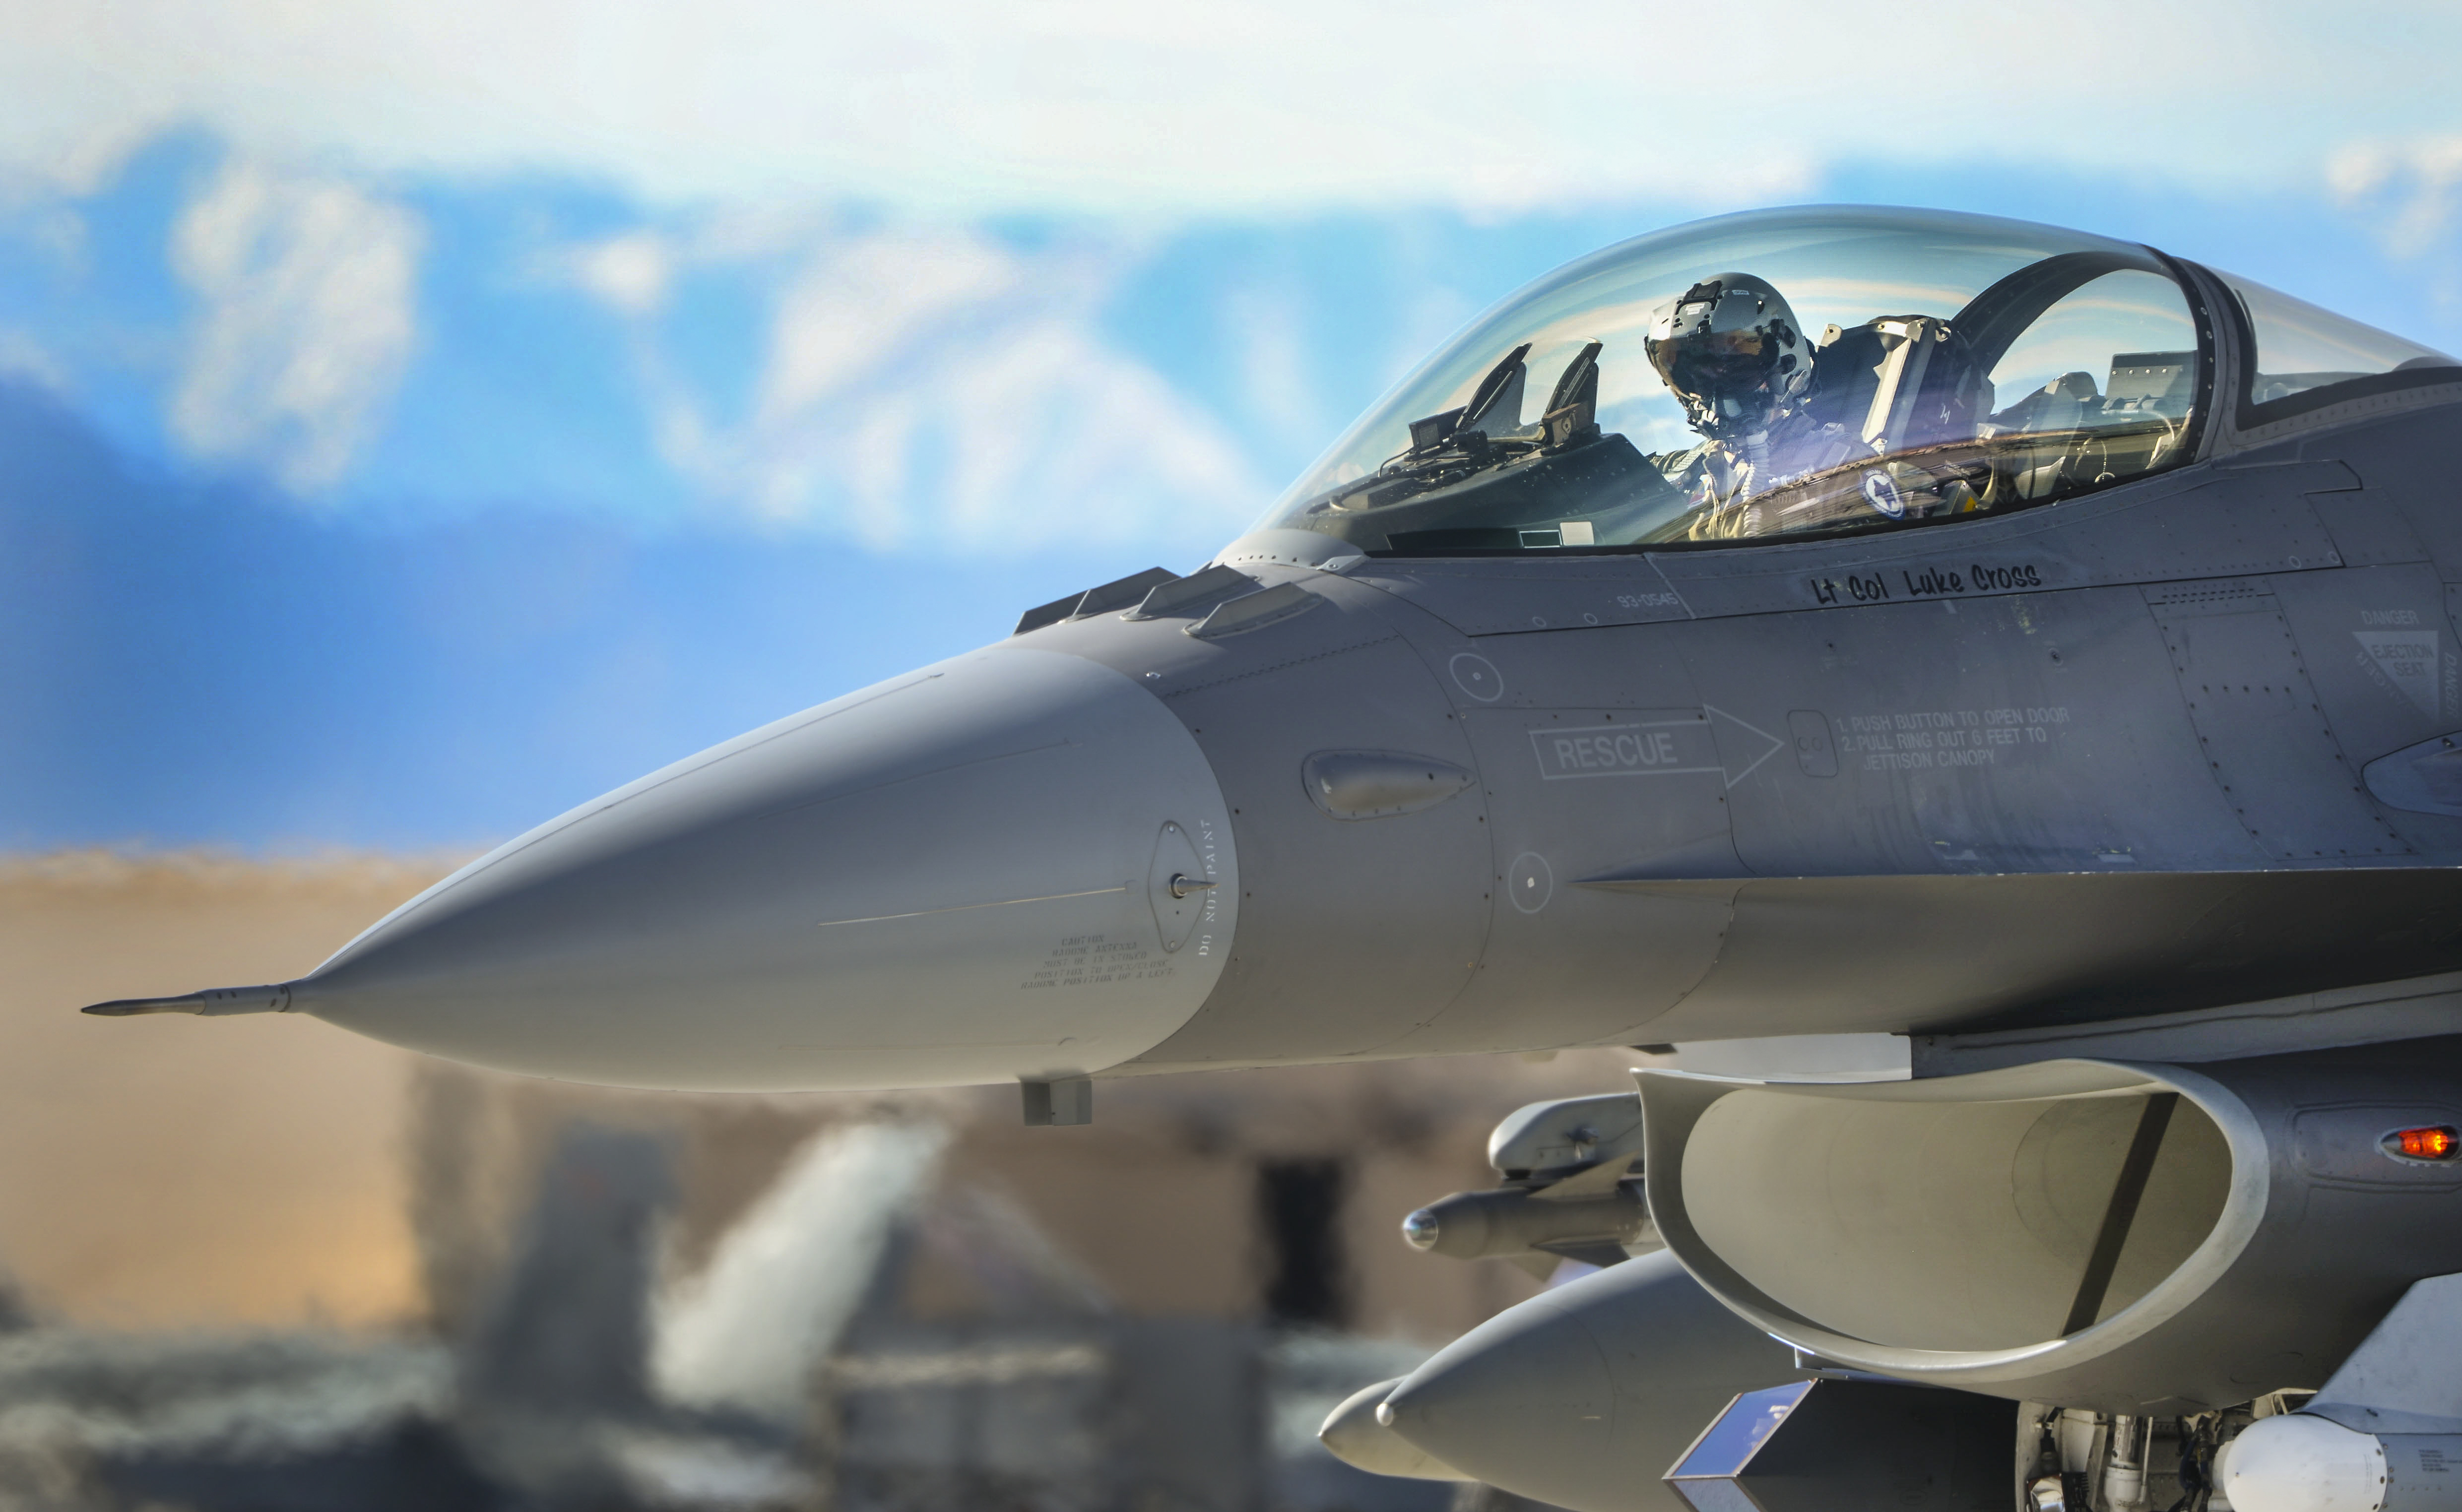 An F-16 Fighting Falcon pilot prepares for takeoff during Red Flag 16-1 at Nellis Air Force Base, Nev., Jan. 25, 2016. Red Flag is a realistic combat exercise involving U.S. and allied air forces conducting training operations on the 15,000 square mile Nevada Test and Training Range.